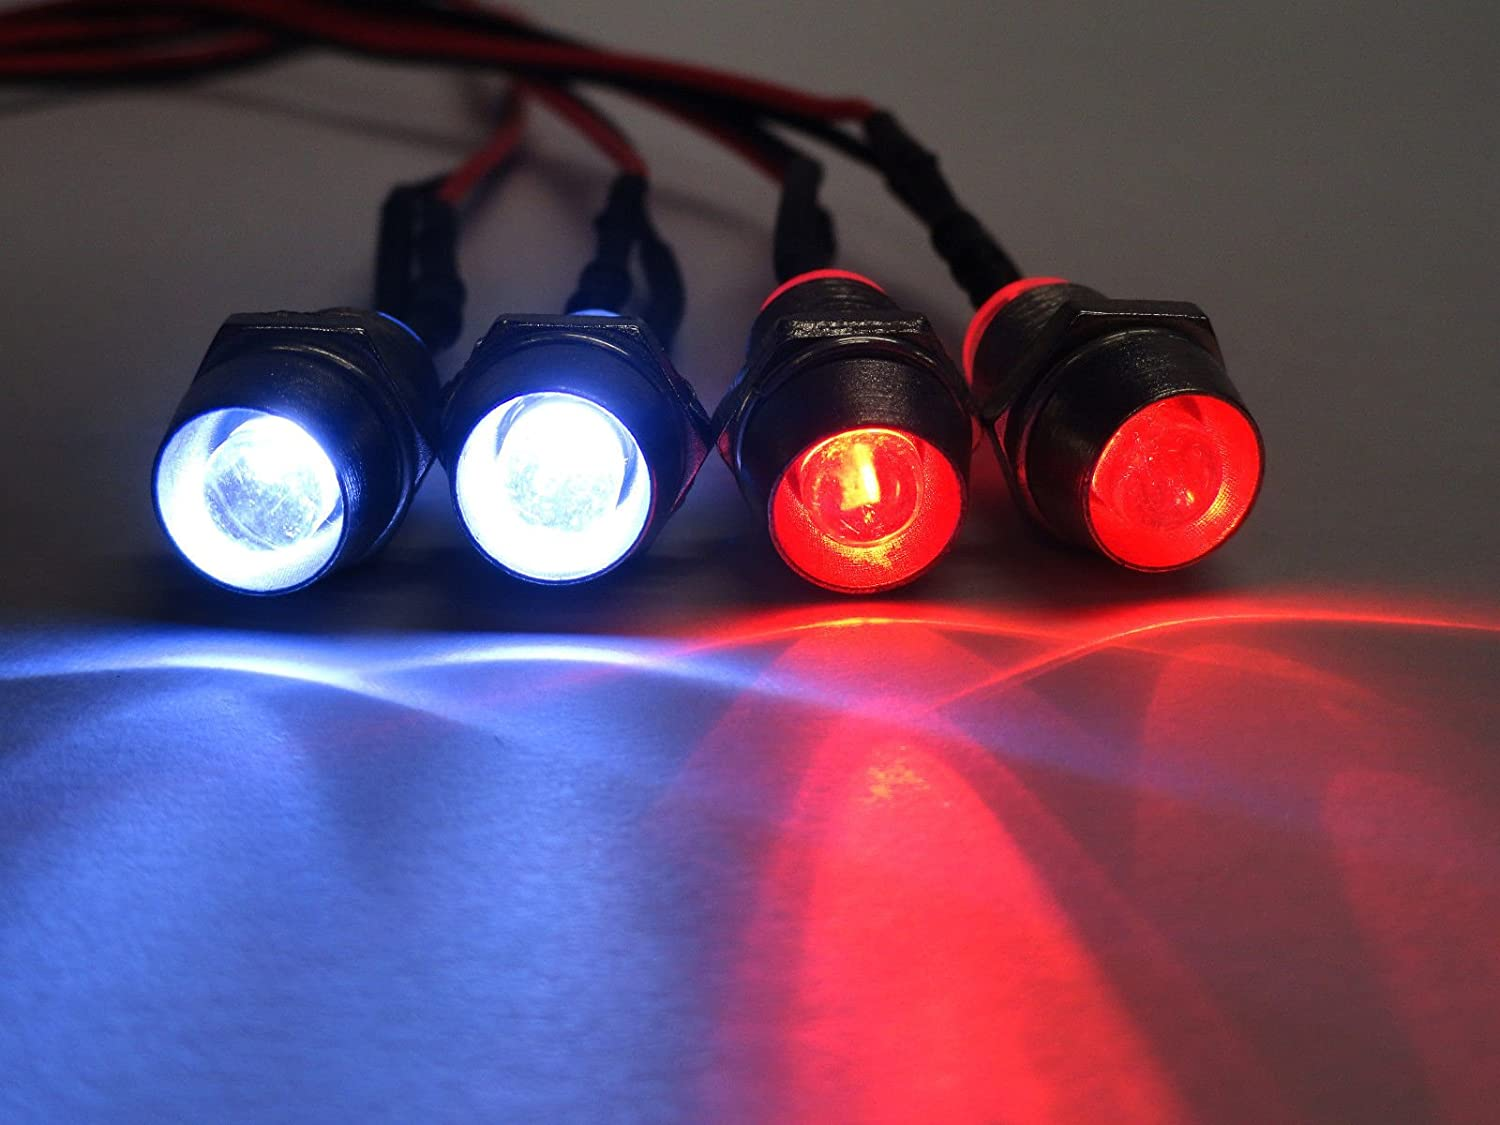 Apex RC Products 4 LED Headlight online shopping Bezels w Max 40% OFF - Kit Taillight Unive